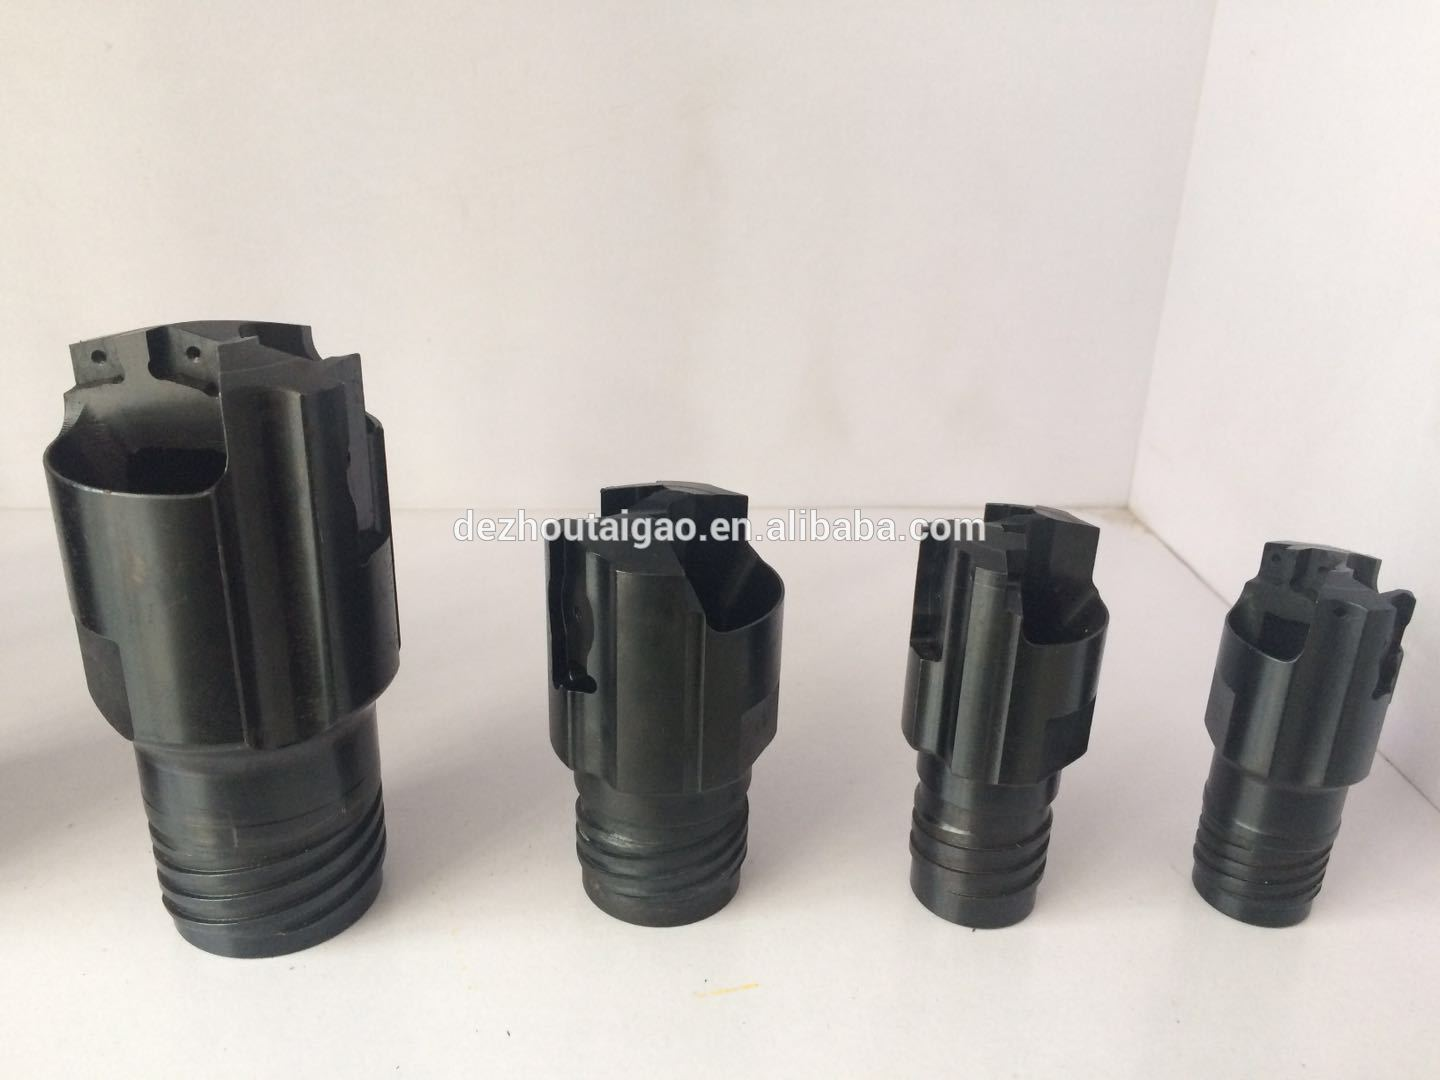 Hot selling high quality BTA deep hole drill head with inserts and guide pads